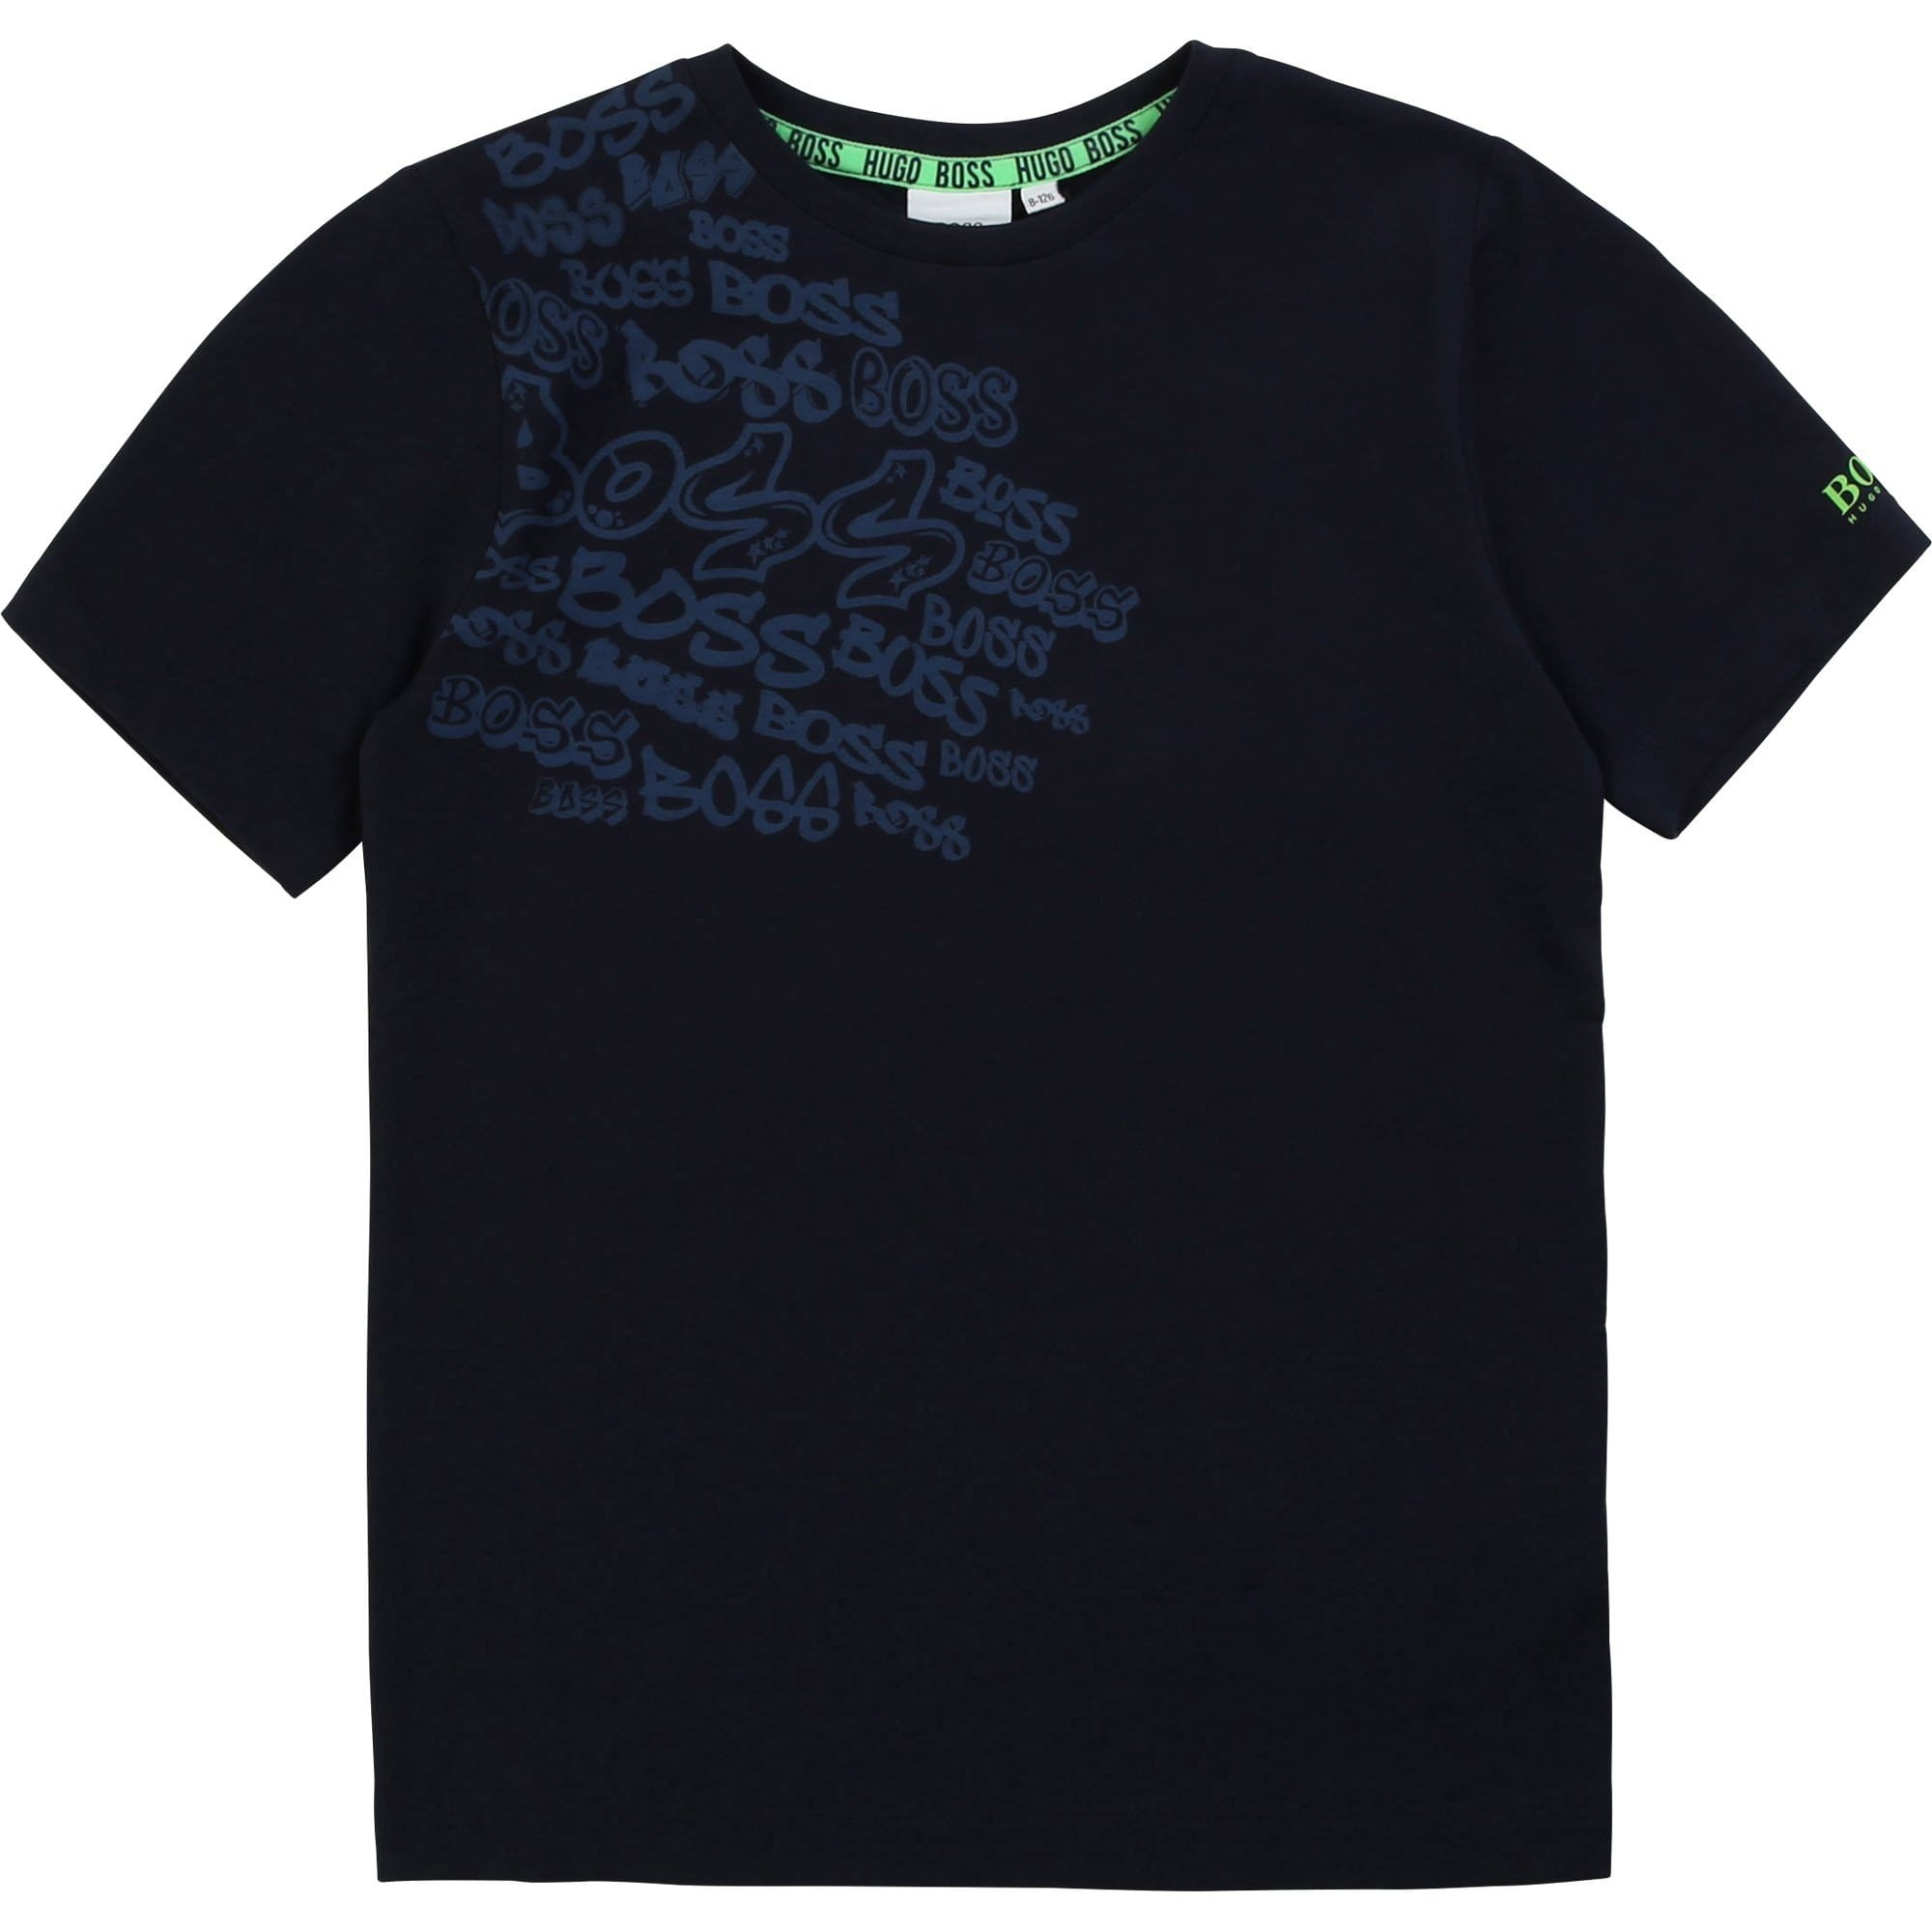 Hugo Boss Short Sleeve Branded T-Shirt Navy J25E77/849